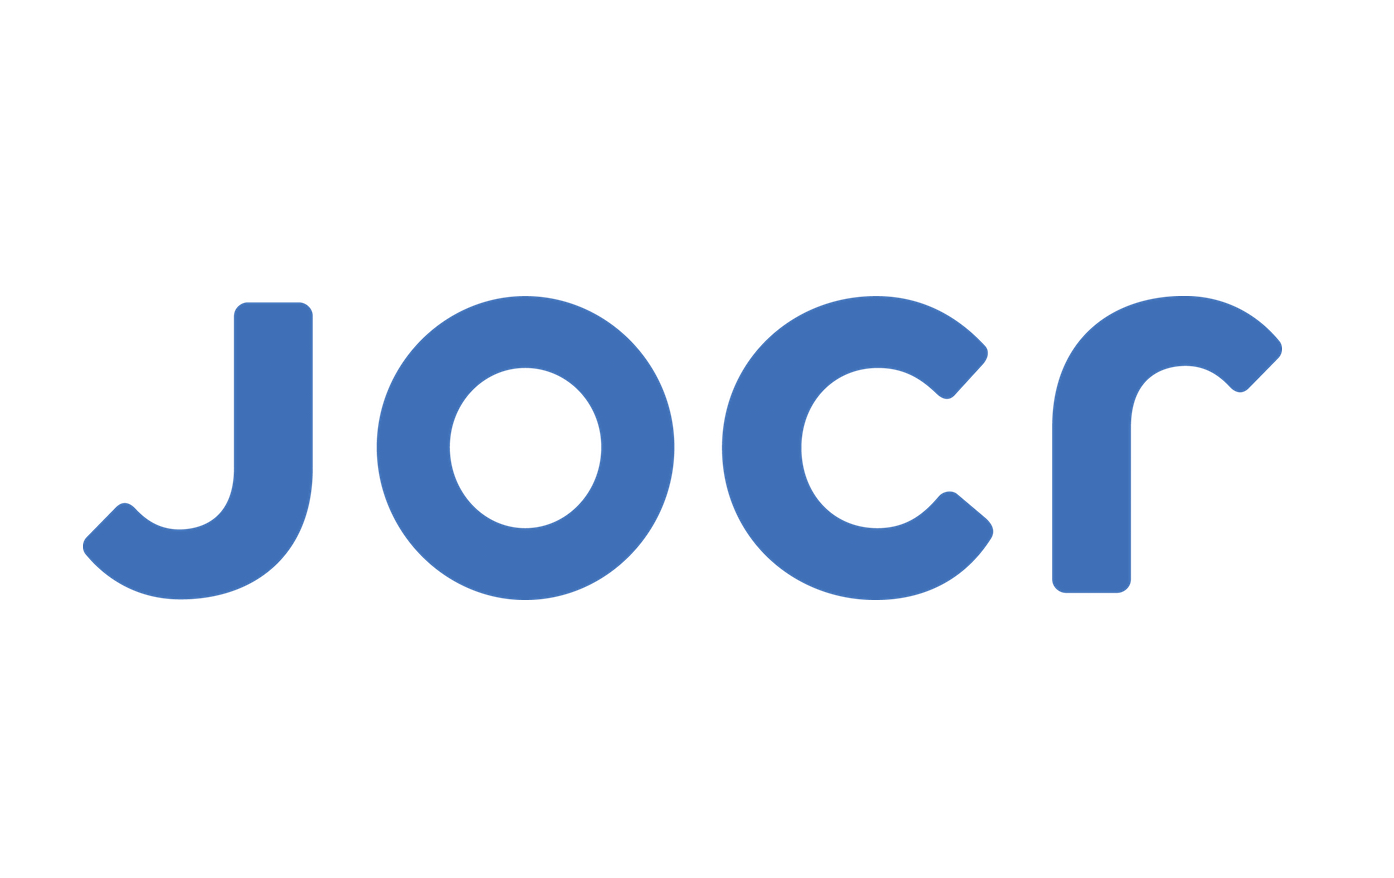 JOCR - Apple Product Support in Berlin